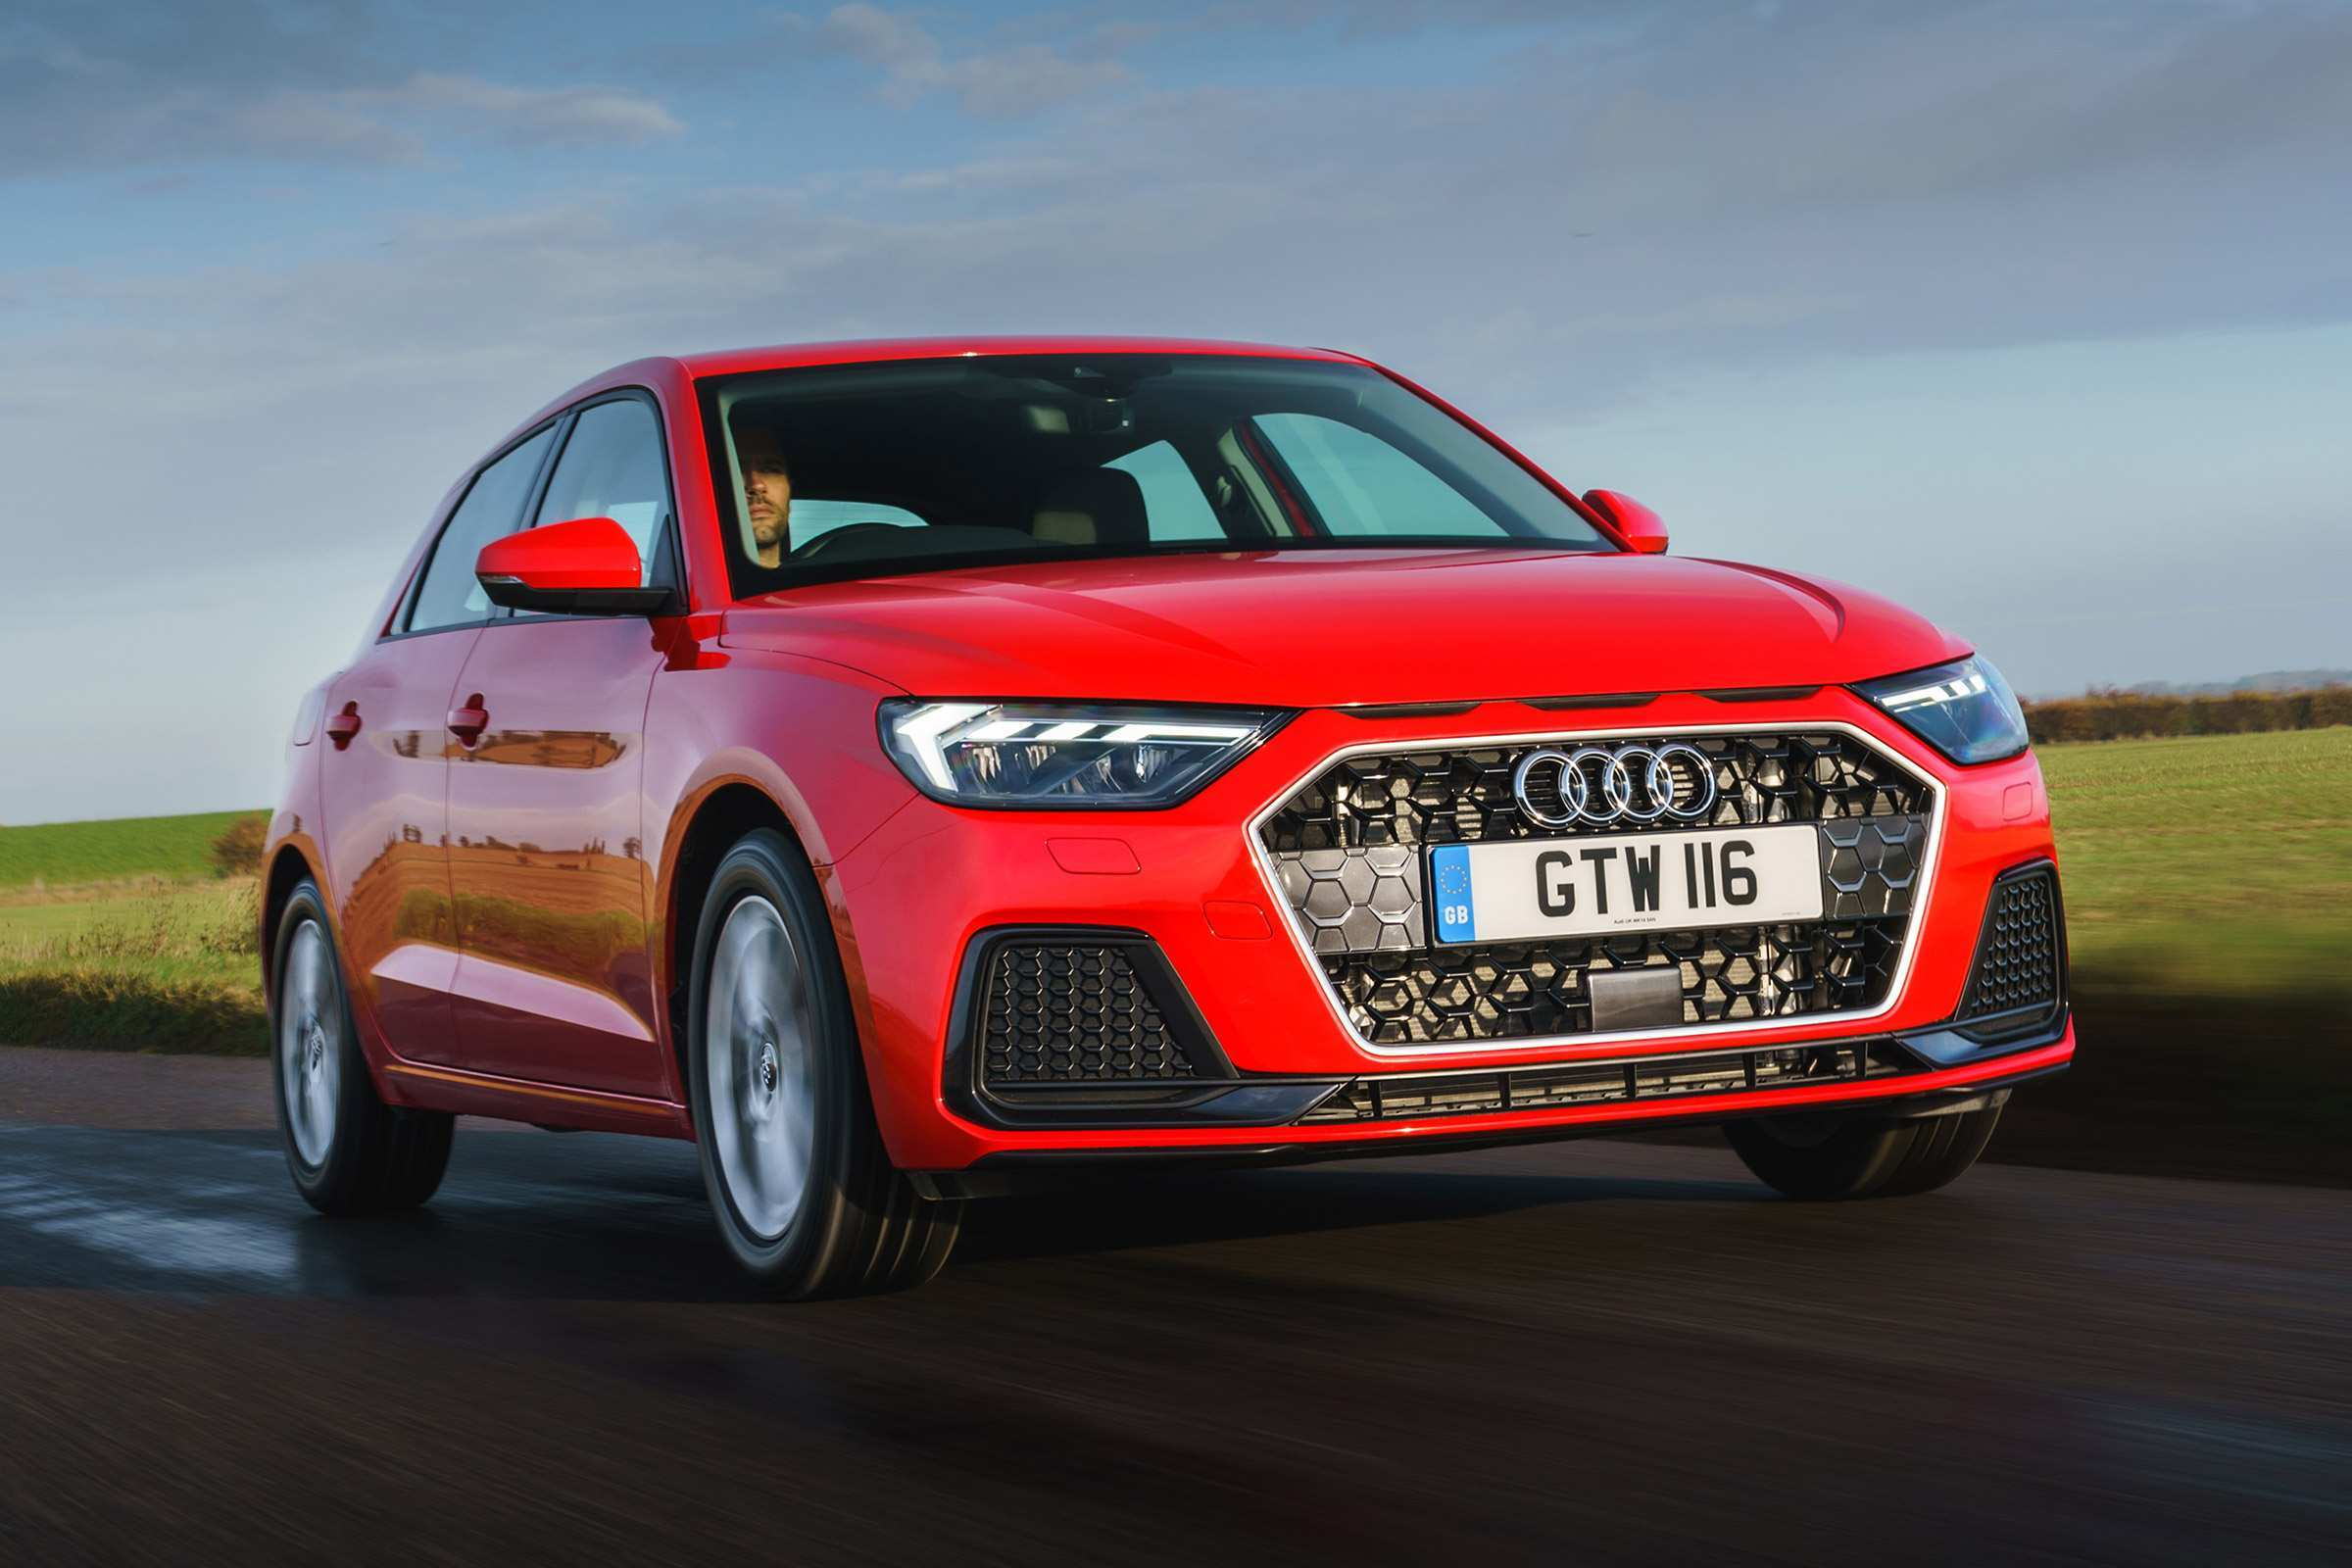 91 Gallery of New Audi 2019 Uk Exterior Release Date with New Audi 2019 Uk Exterior